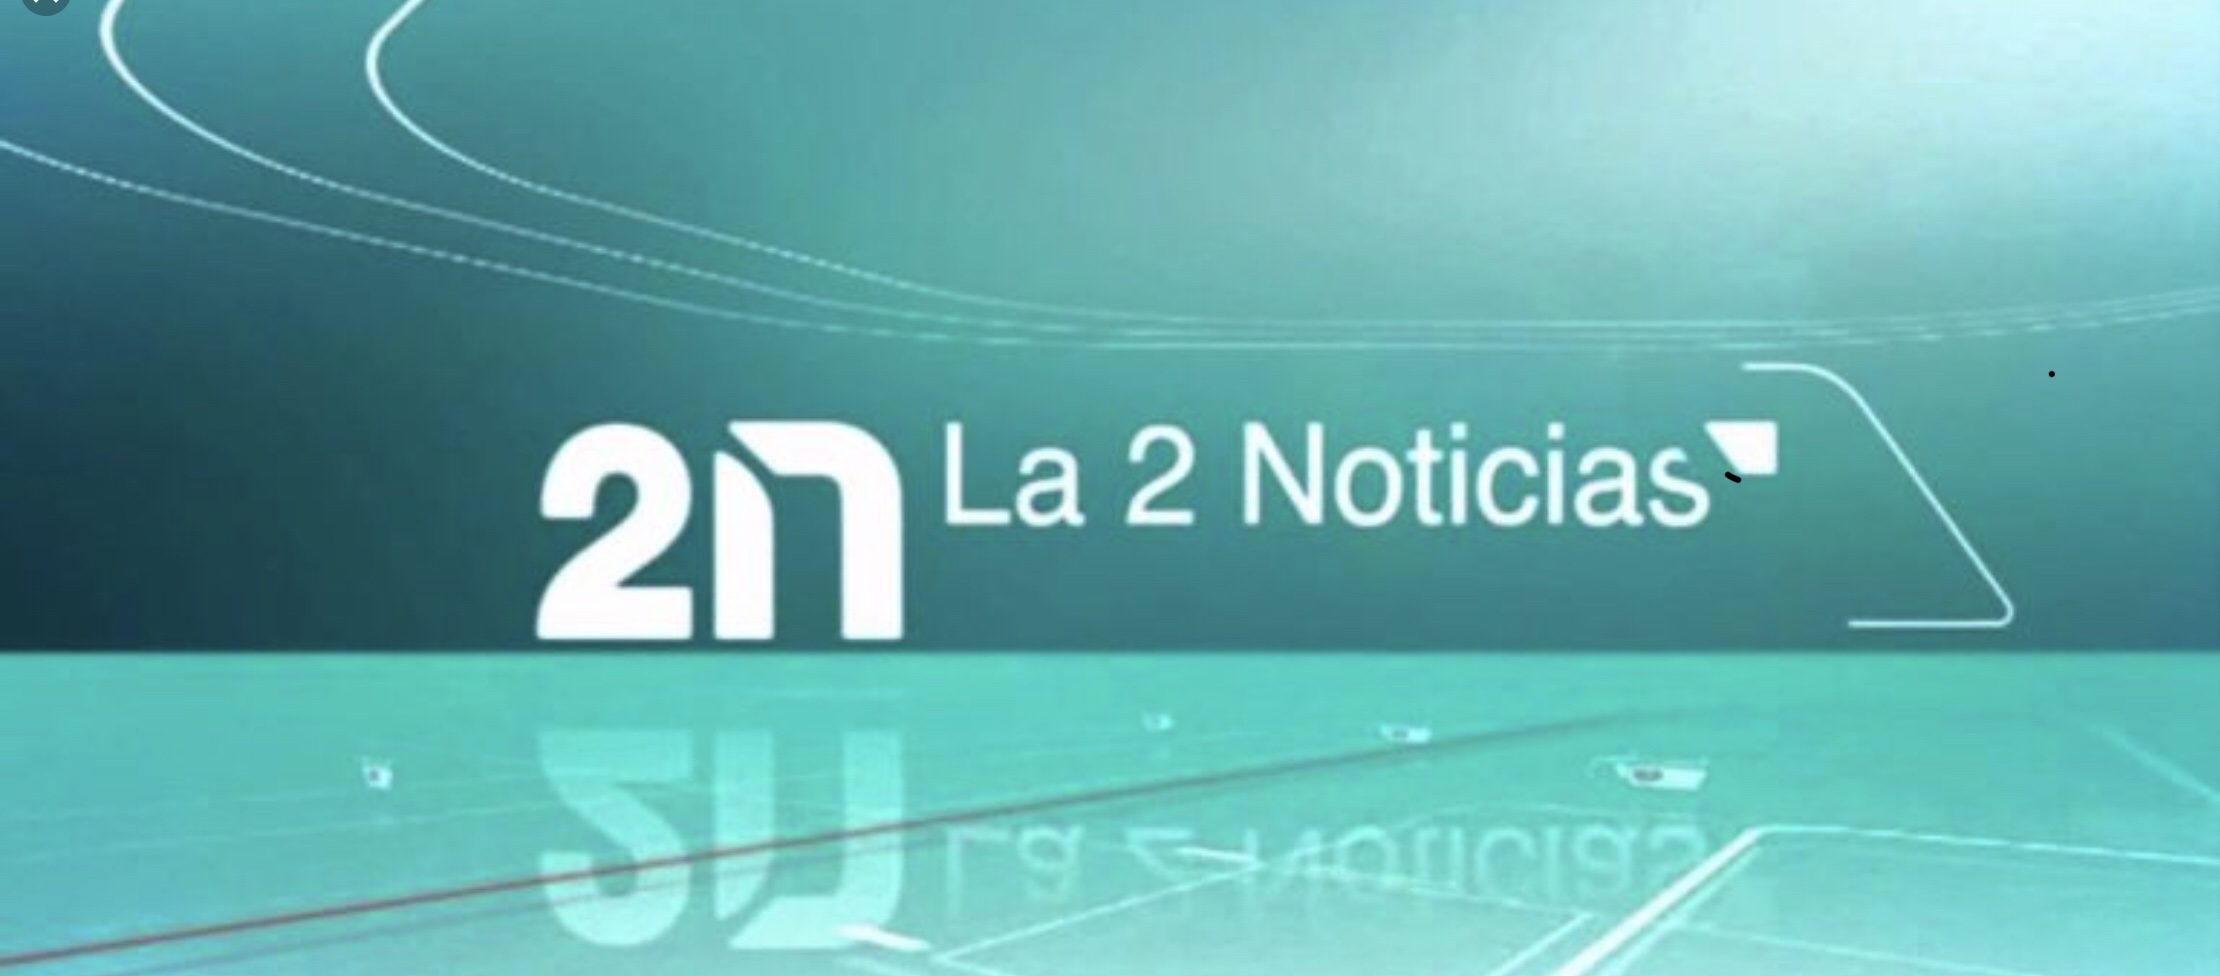 La 2 Noticias, National TV, Spain - Live show and interview with Sara Rioja